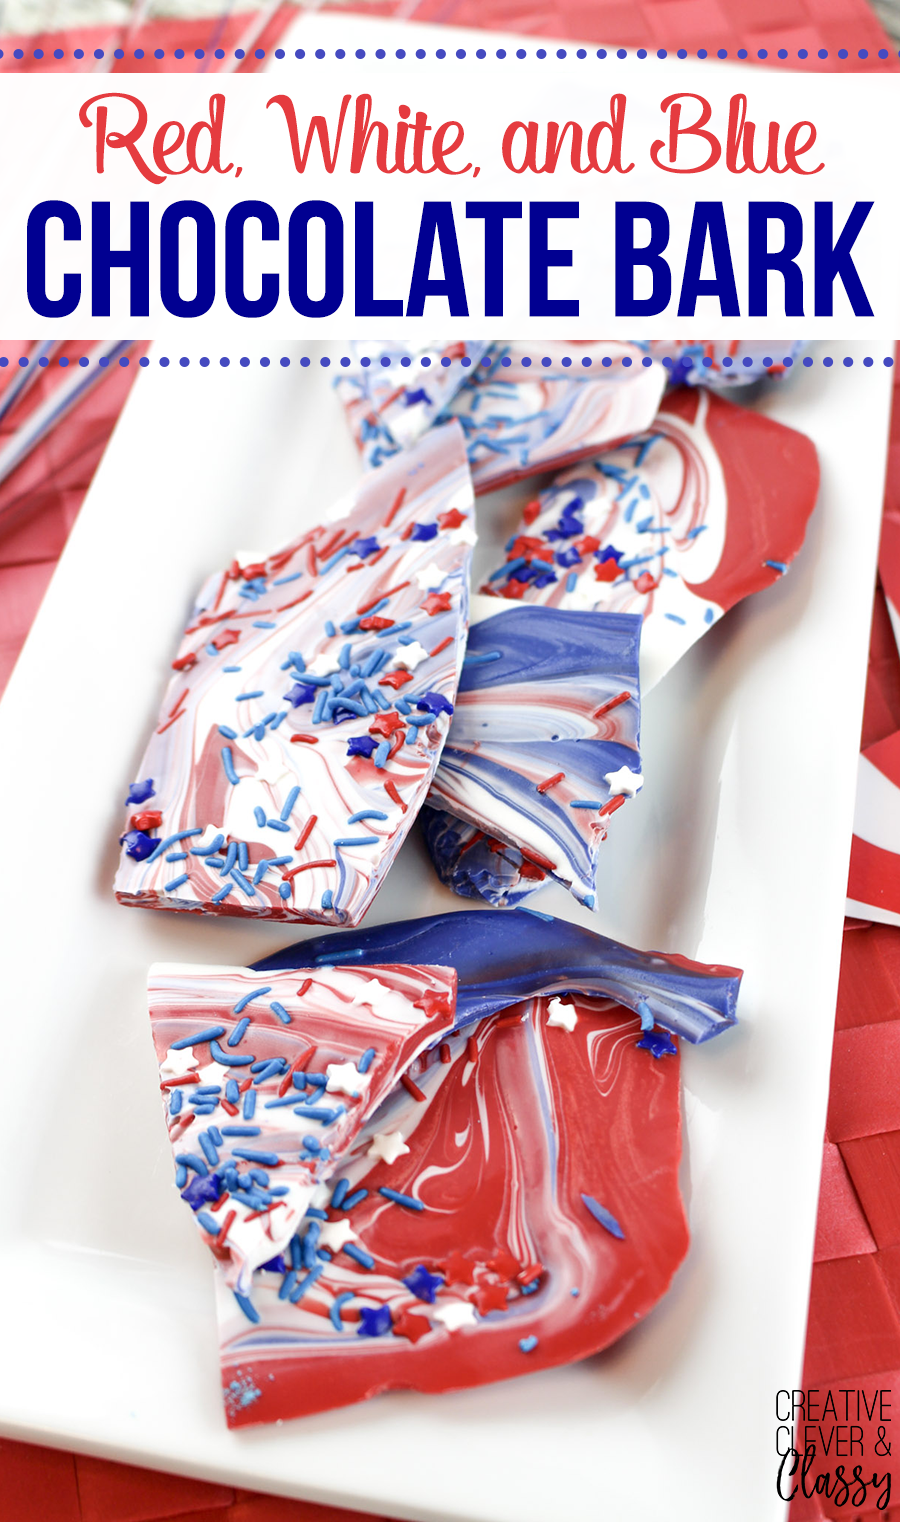 One of the easiest patriotic dessert recipes out there, here is a delicious red, white and blue swirled patriotic bark great for the 4th of July!